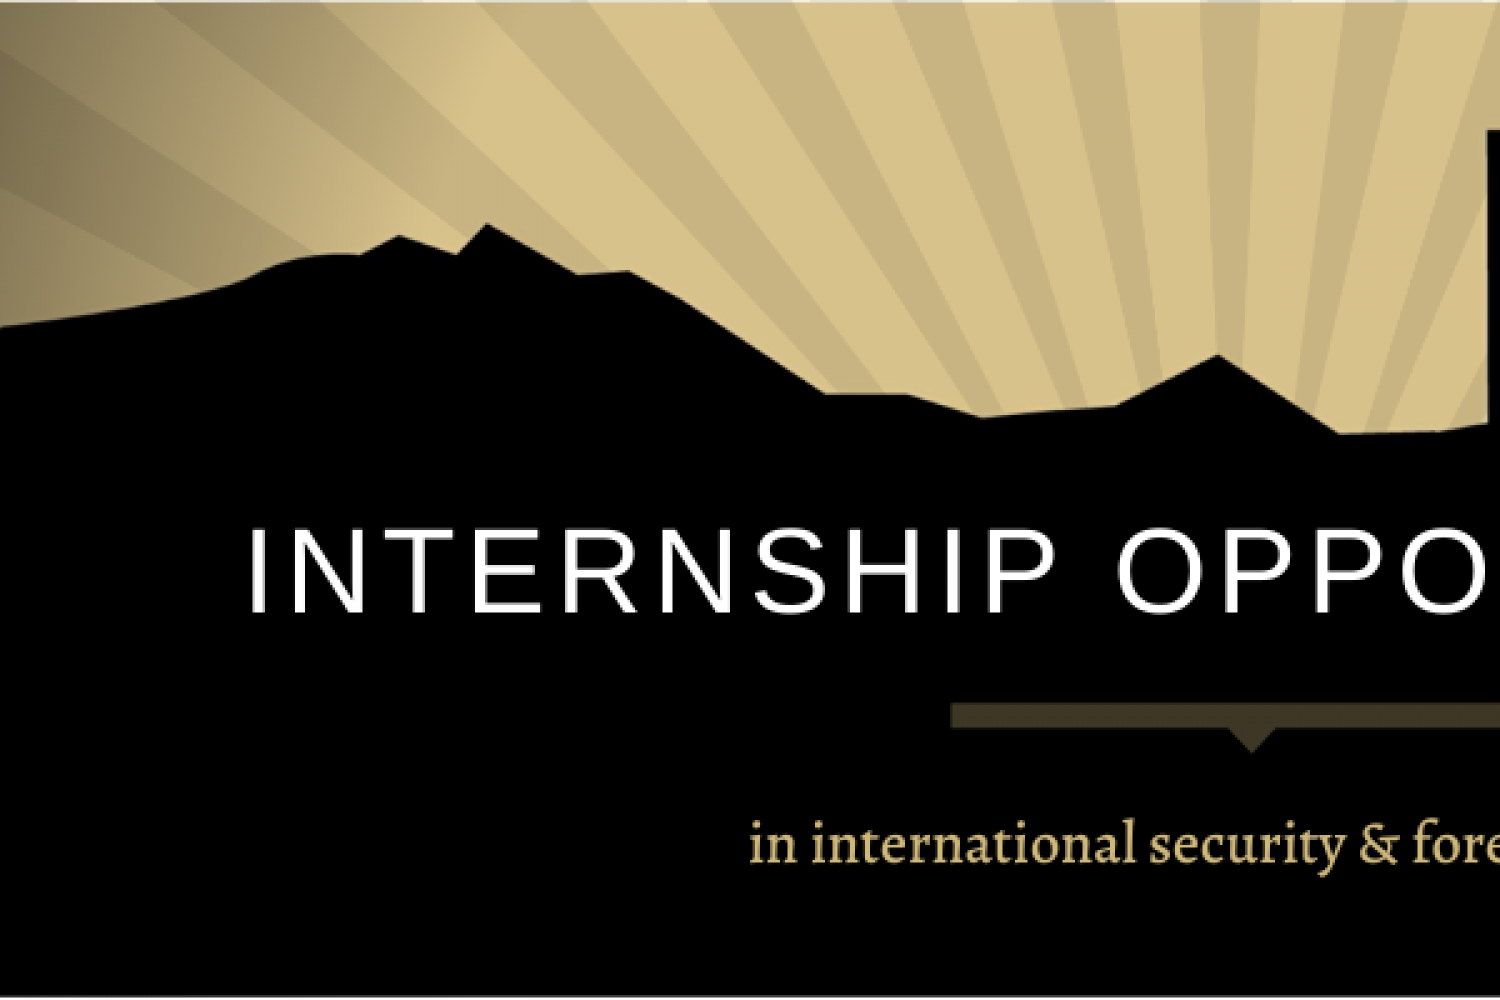 internship opportunities in international security & foreign policy graphic with denver silhouette